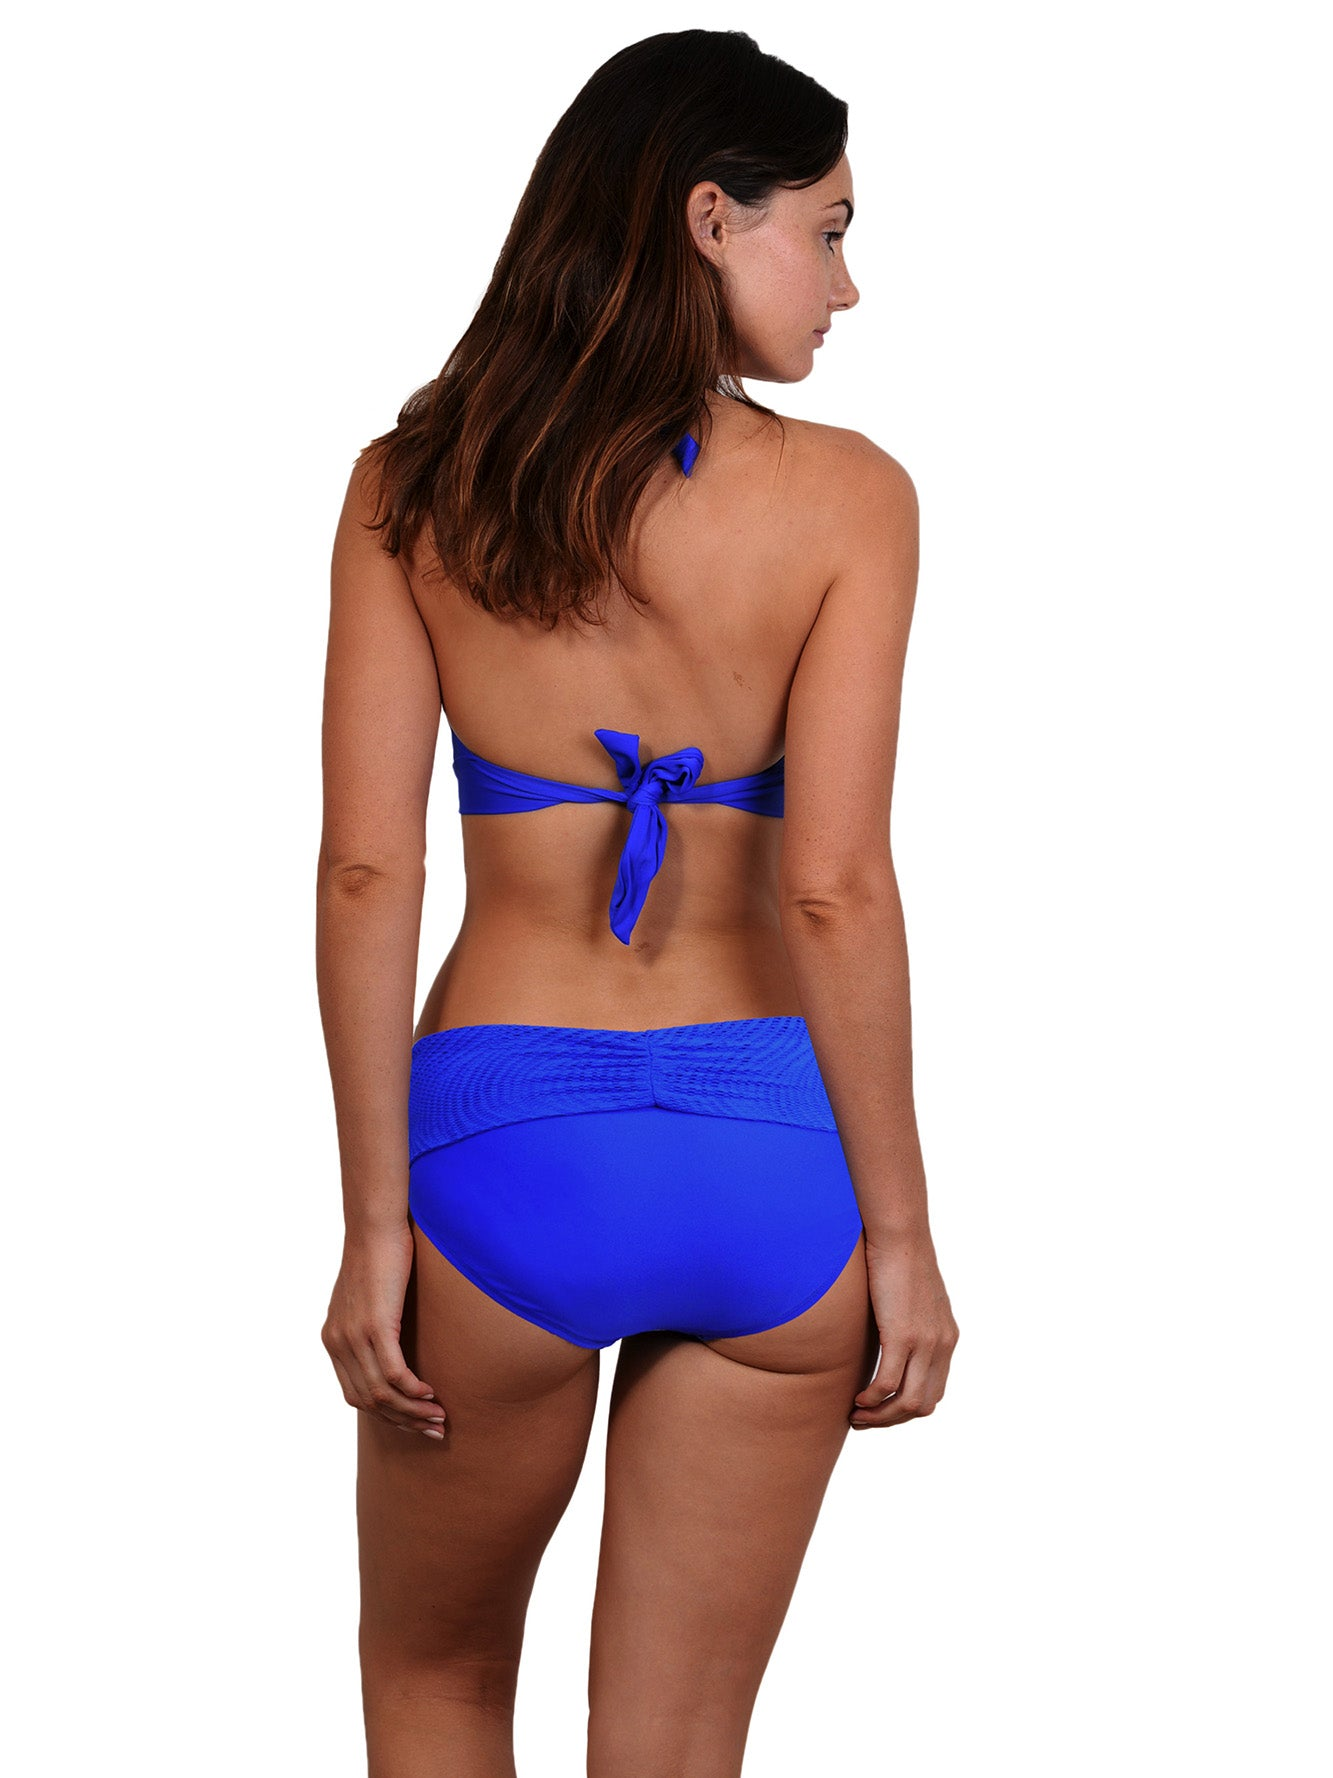 SANTORINI HIGH WAIST BAND PANT in Lapis colour